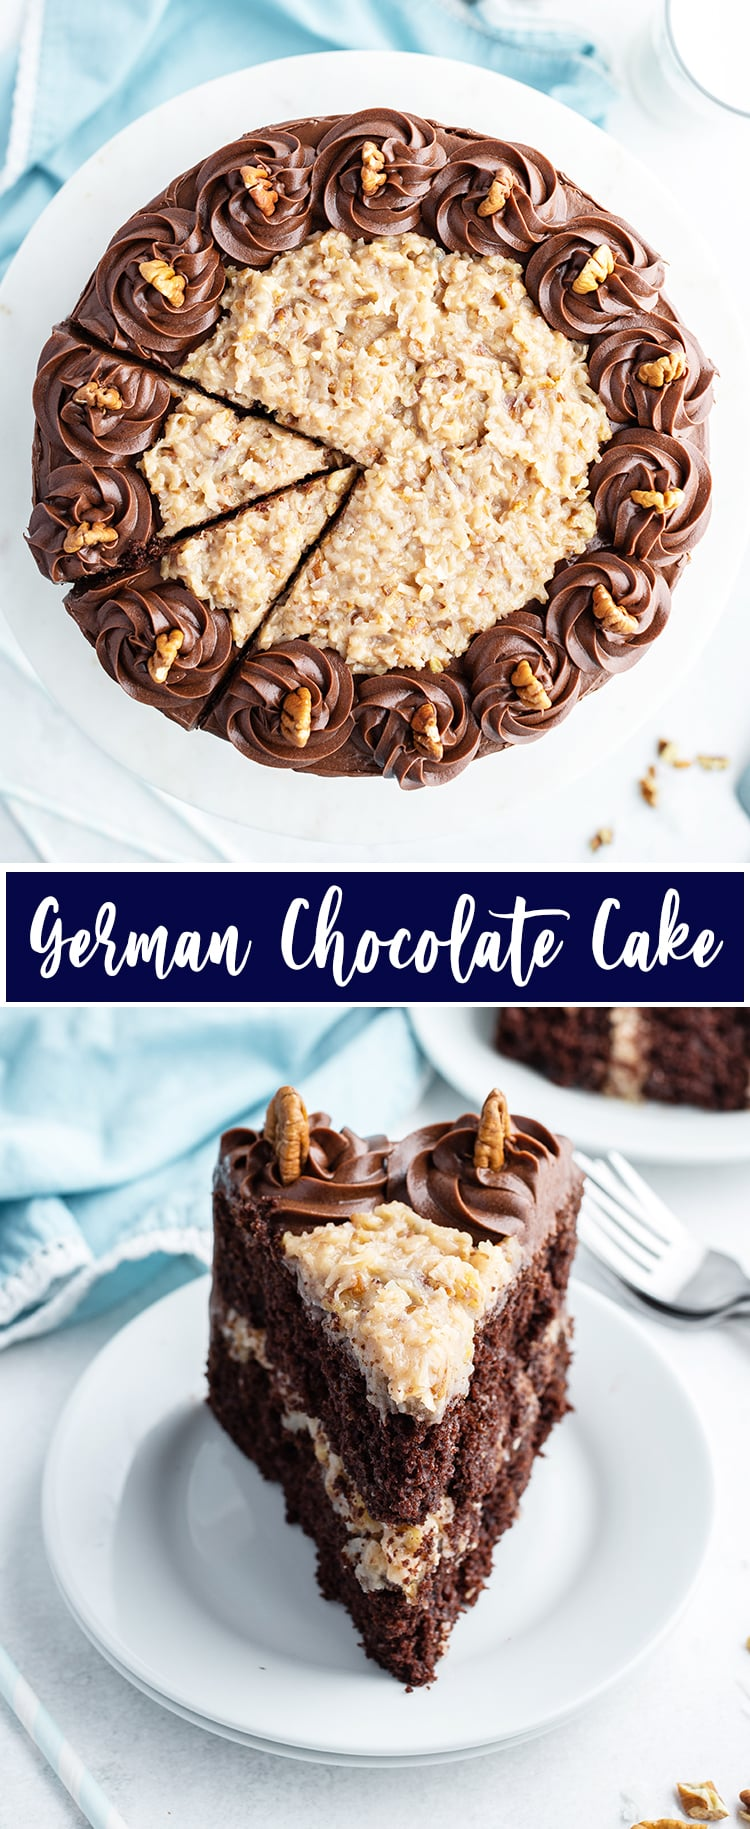 A collage of two photos of German Chocolate Cake. The first photo is the cake from above with coconut pecan frosting and chocolate buttercream. The second photo is a slice of German Chocolate cake on a plate.